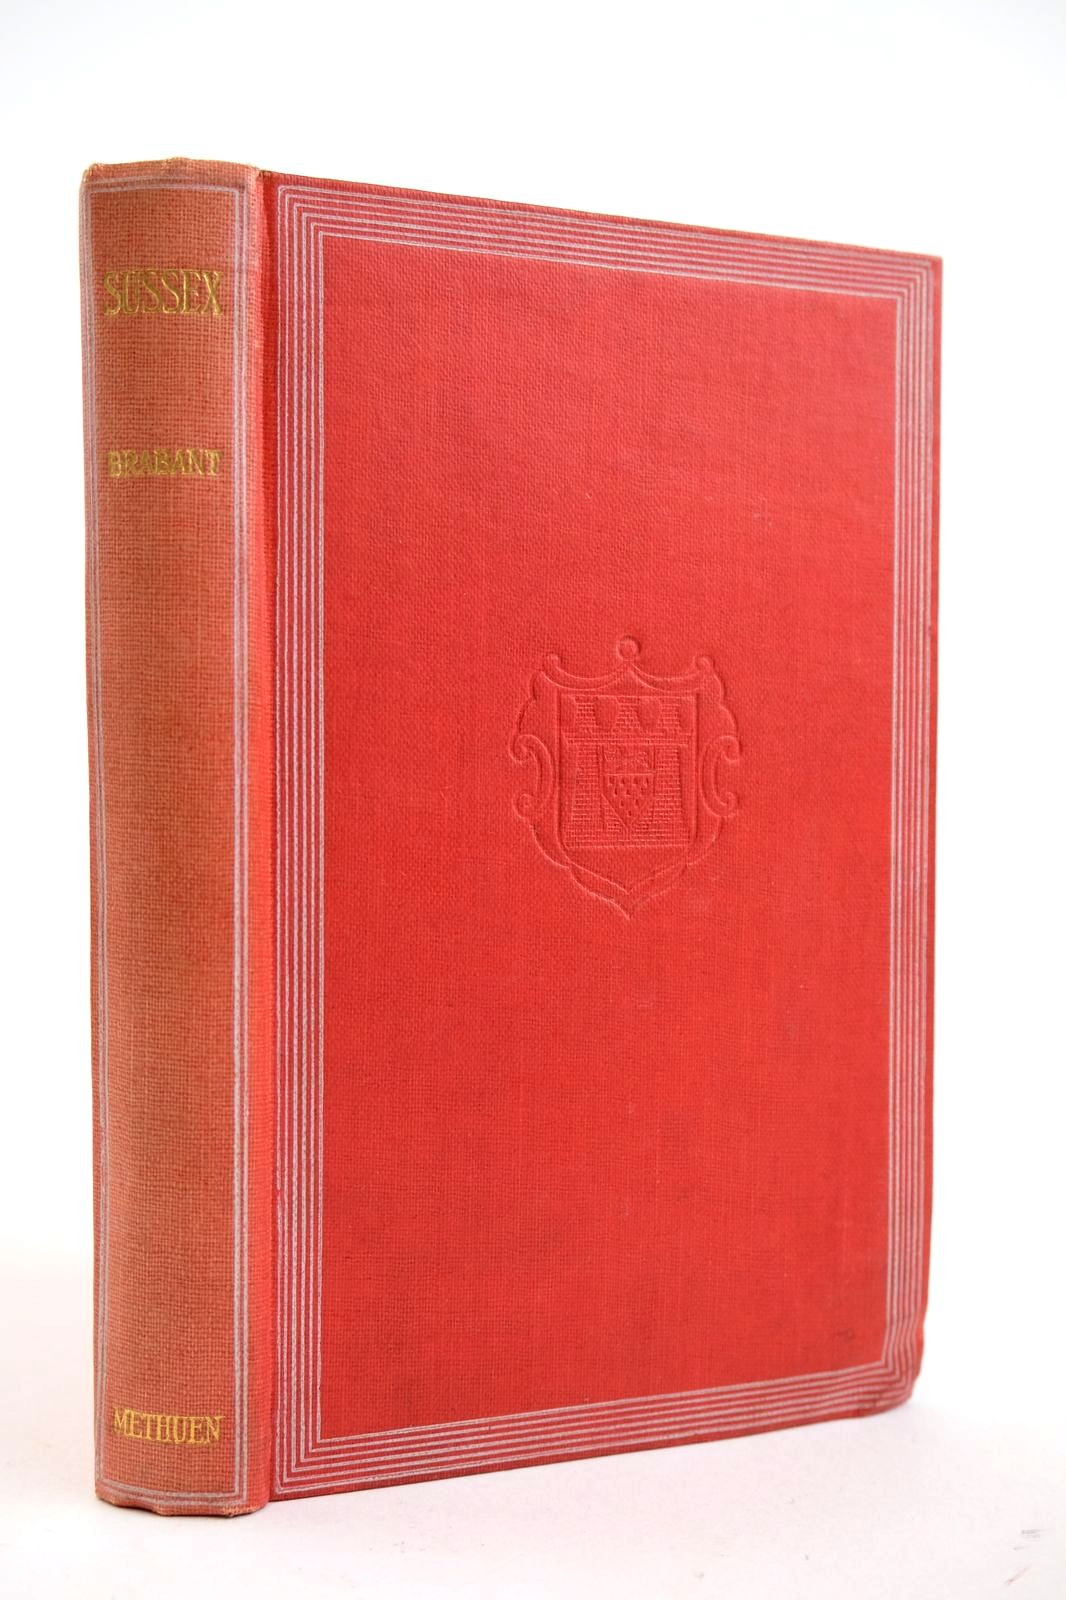 Photo of SUSSEX (LITTLE GUIDE) written by Brabant, F.G. published by Methuen & Co. Ltd. (STOCK CODE: 2132604)  for sale by Stella & Rose's Books